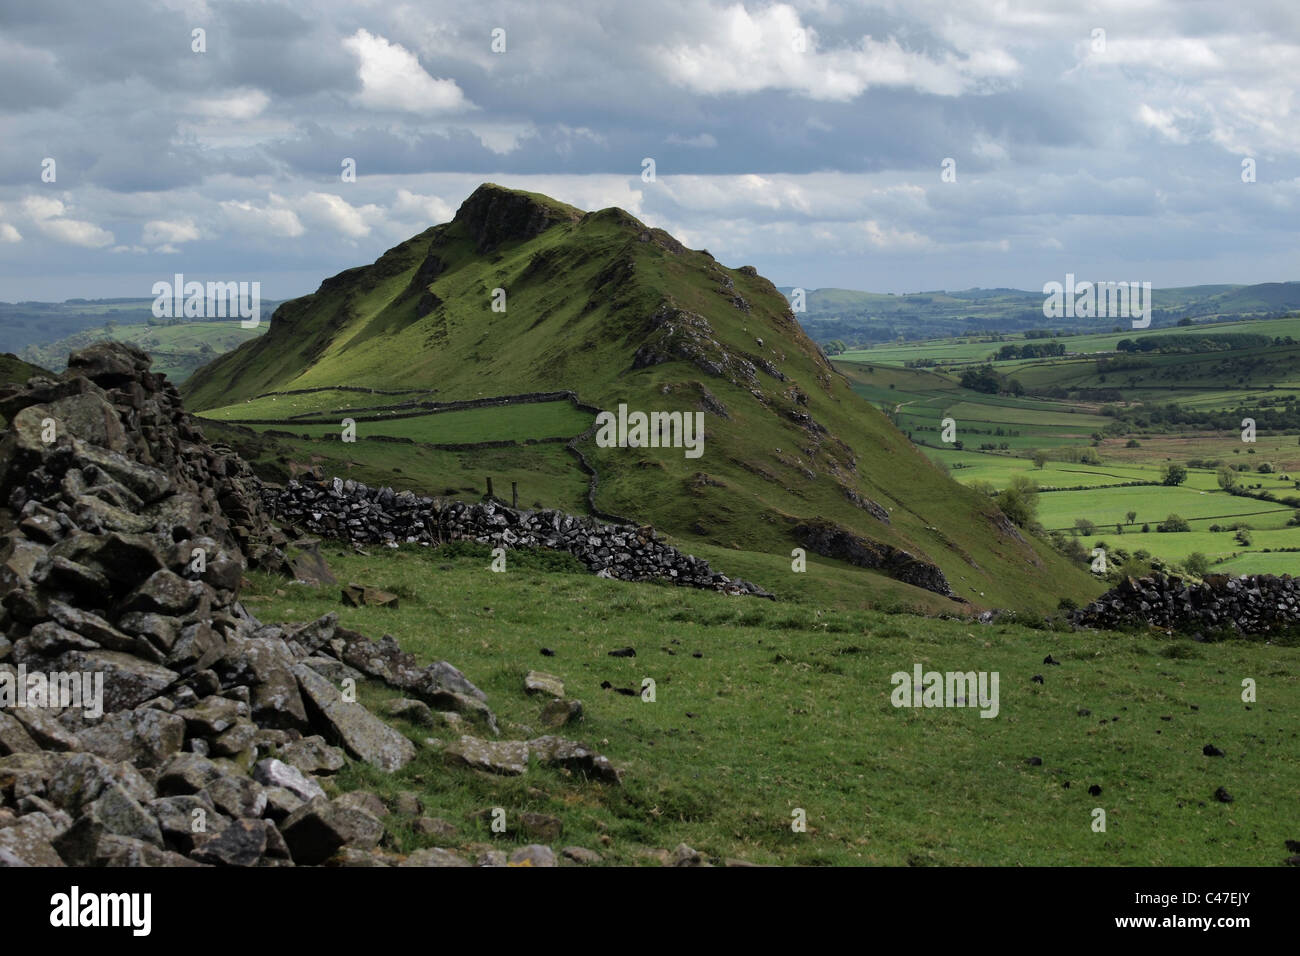 Chrome Hill and countryside in Peak District Derbyshire England UK - Stock Image